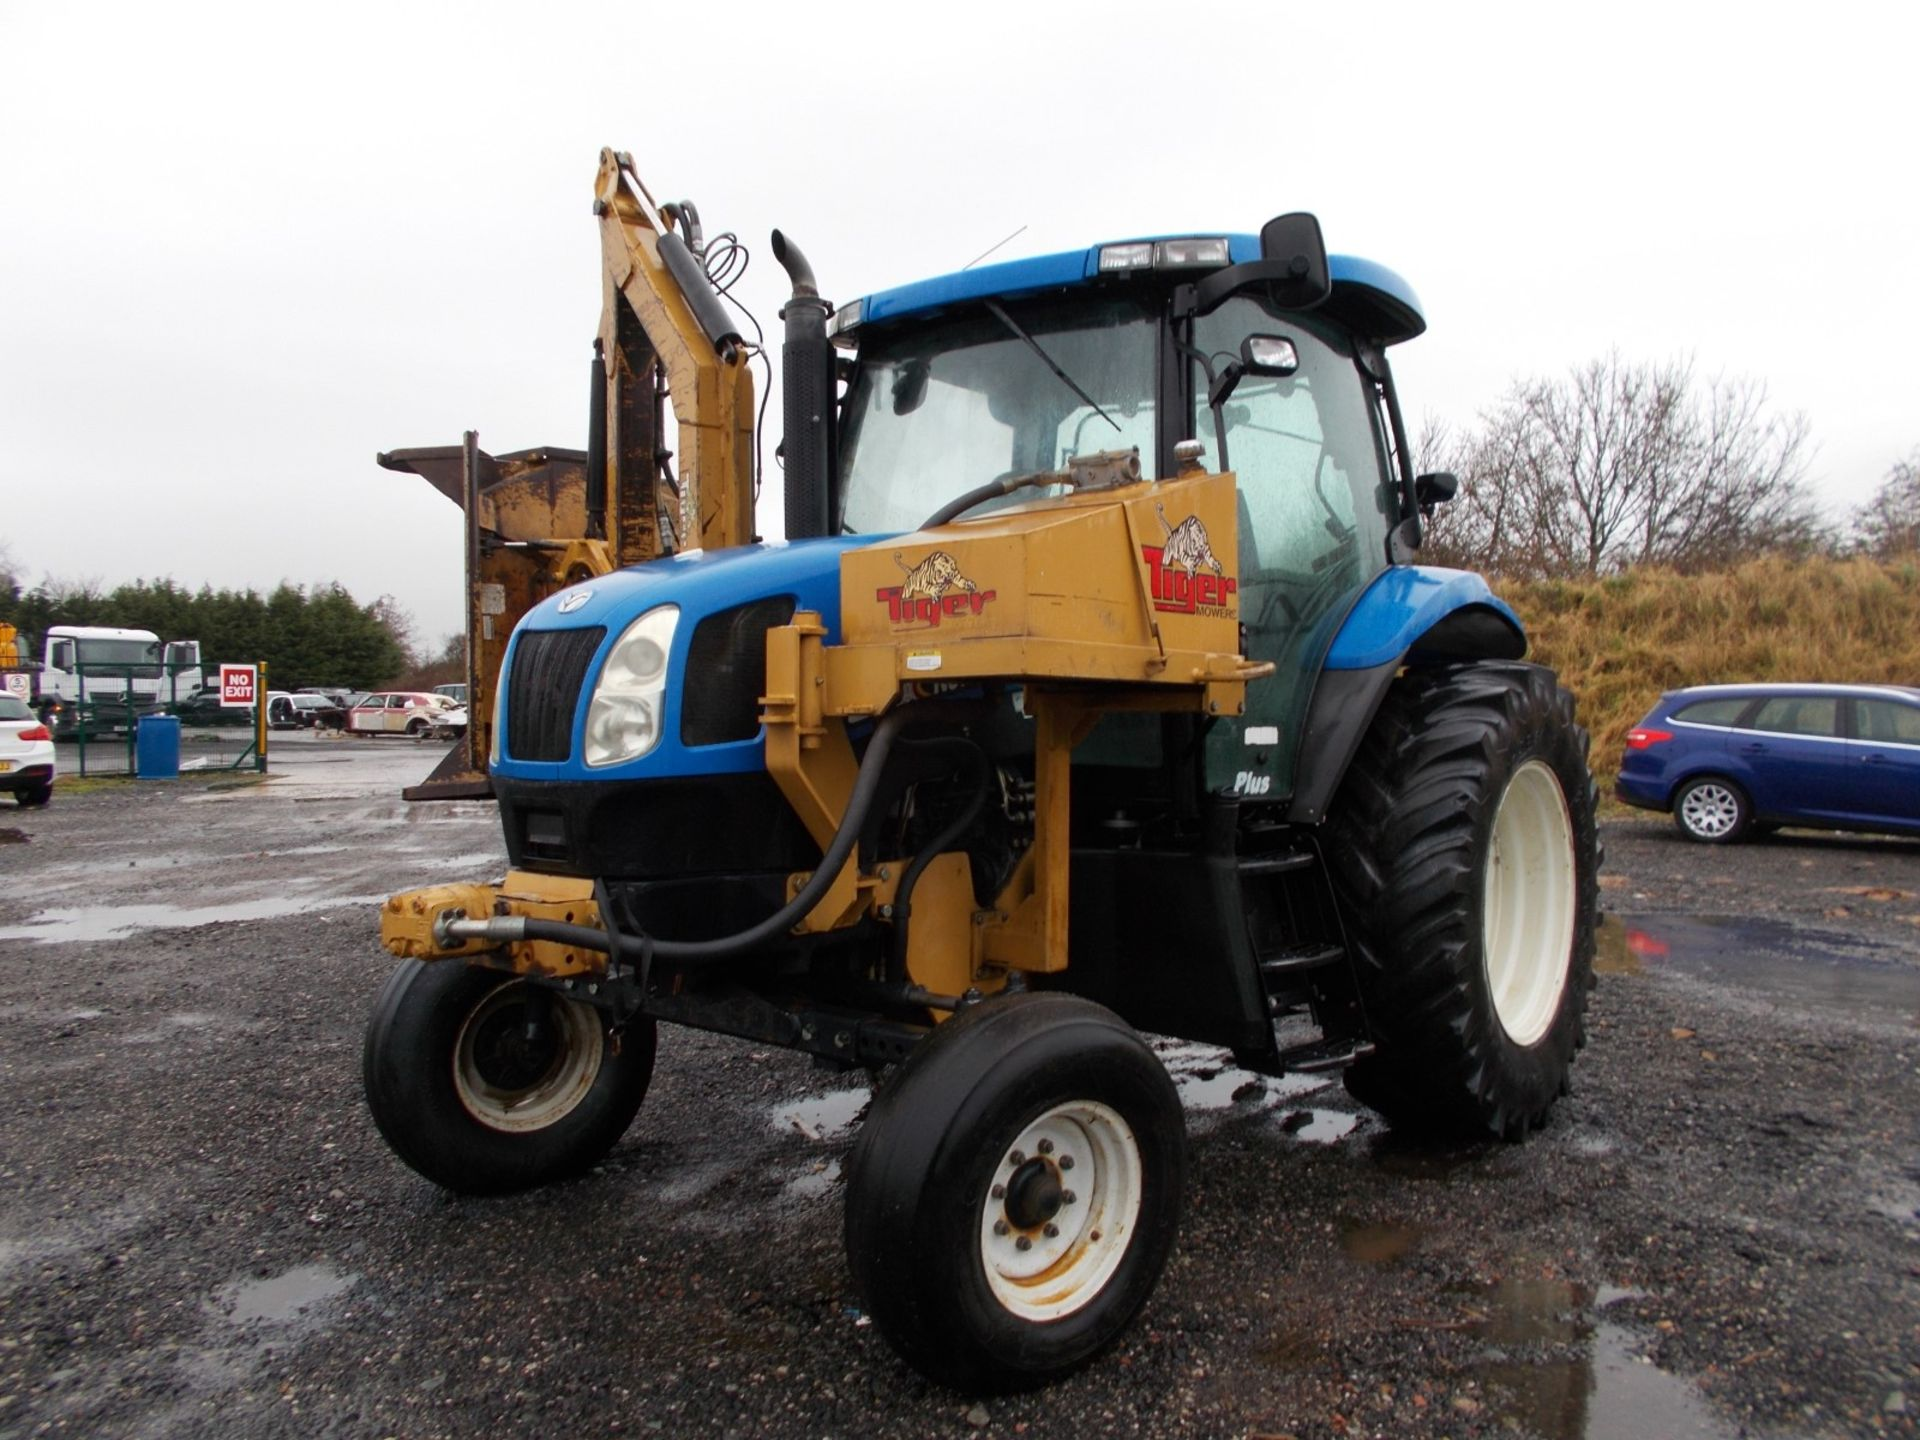 2003 NEW HOLLAND TS100A TRACTOR WITH MOWER ATTACHMENT, 4.5 LITRE 100HP TURBO DIESEL *PLUS VAT* - Image 2 of 24